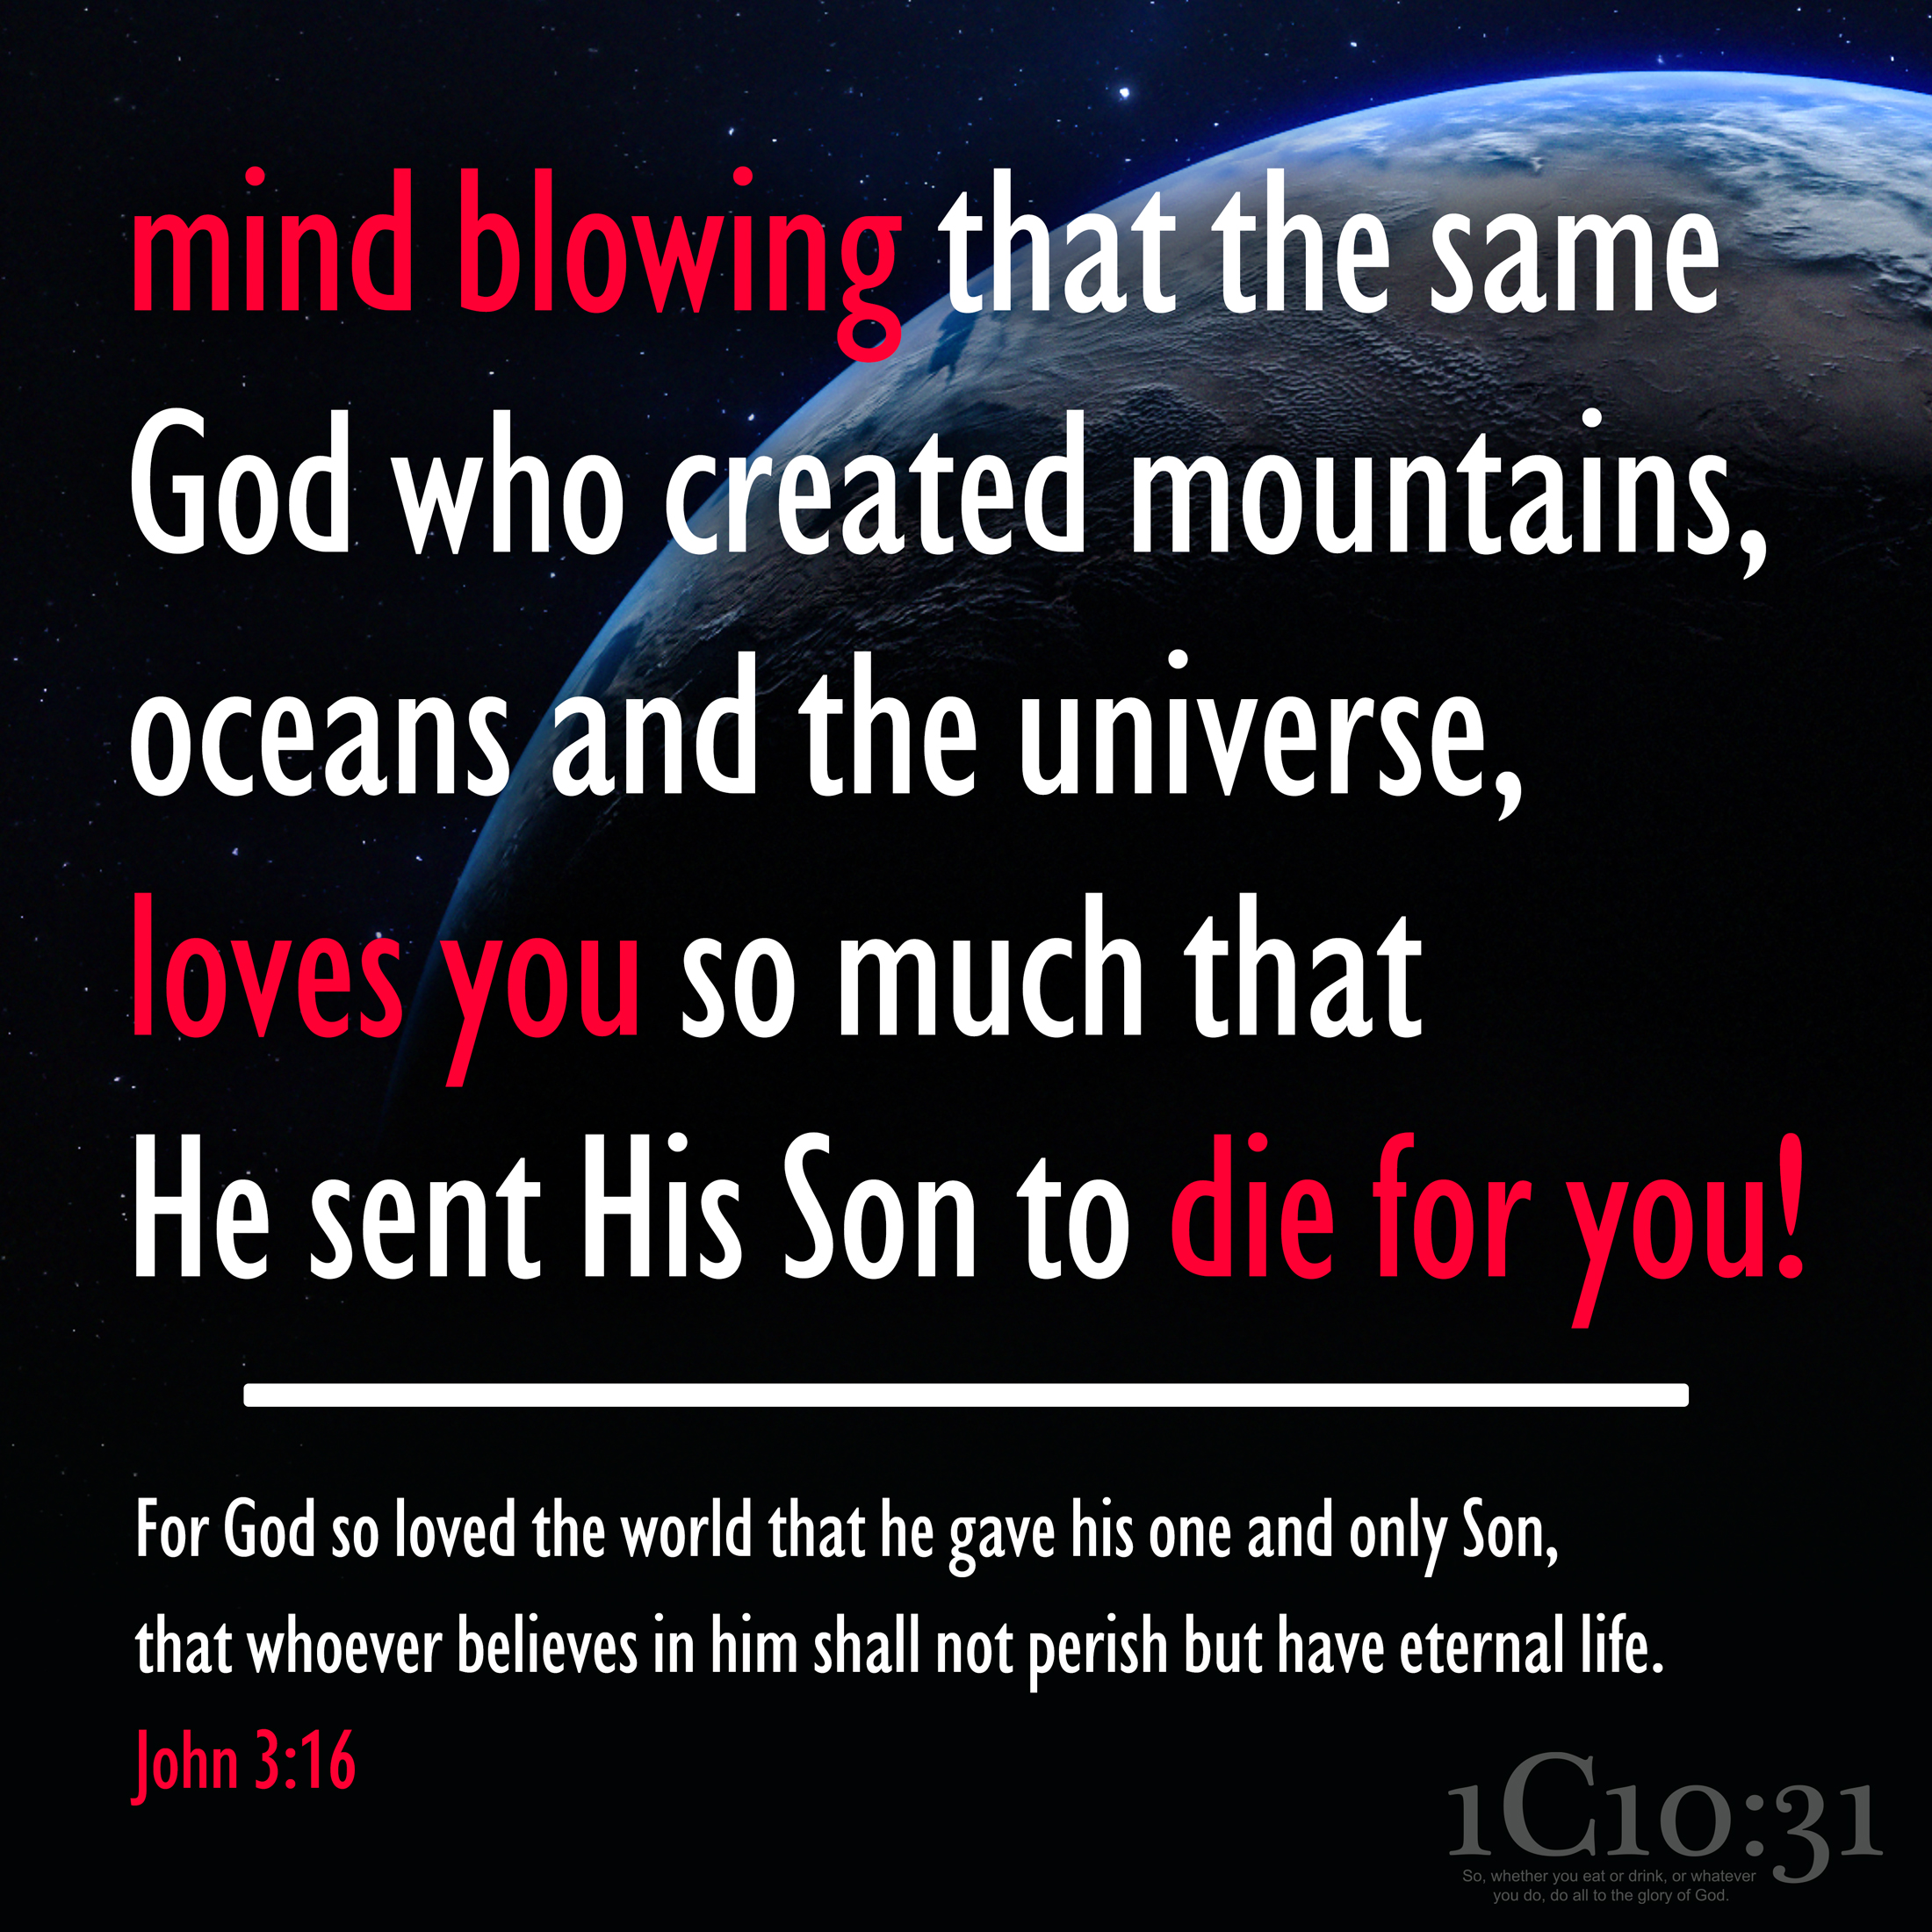 mind blowing that the same God who created mountains, oceans and universe, loves you so much that He sent His Son to die for you!